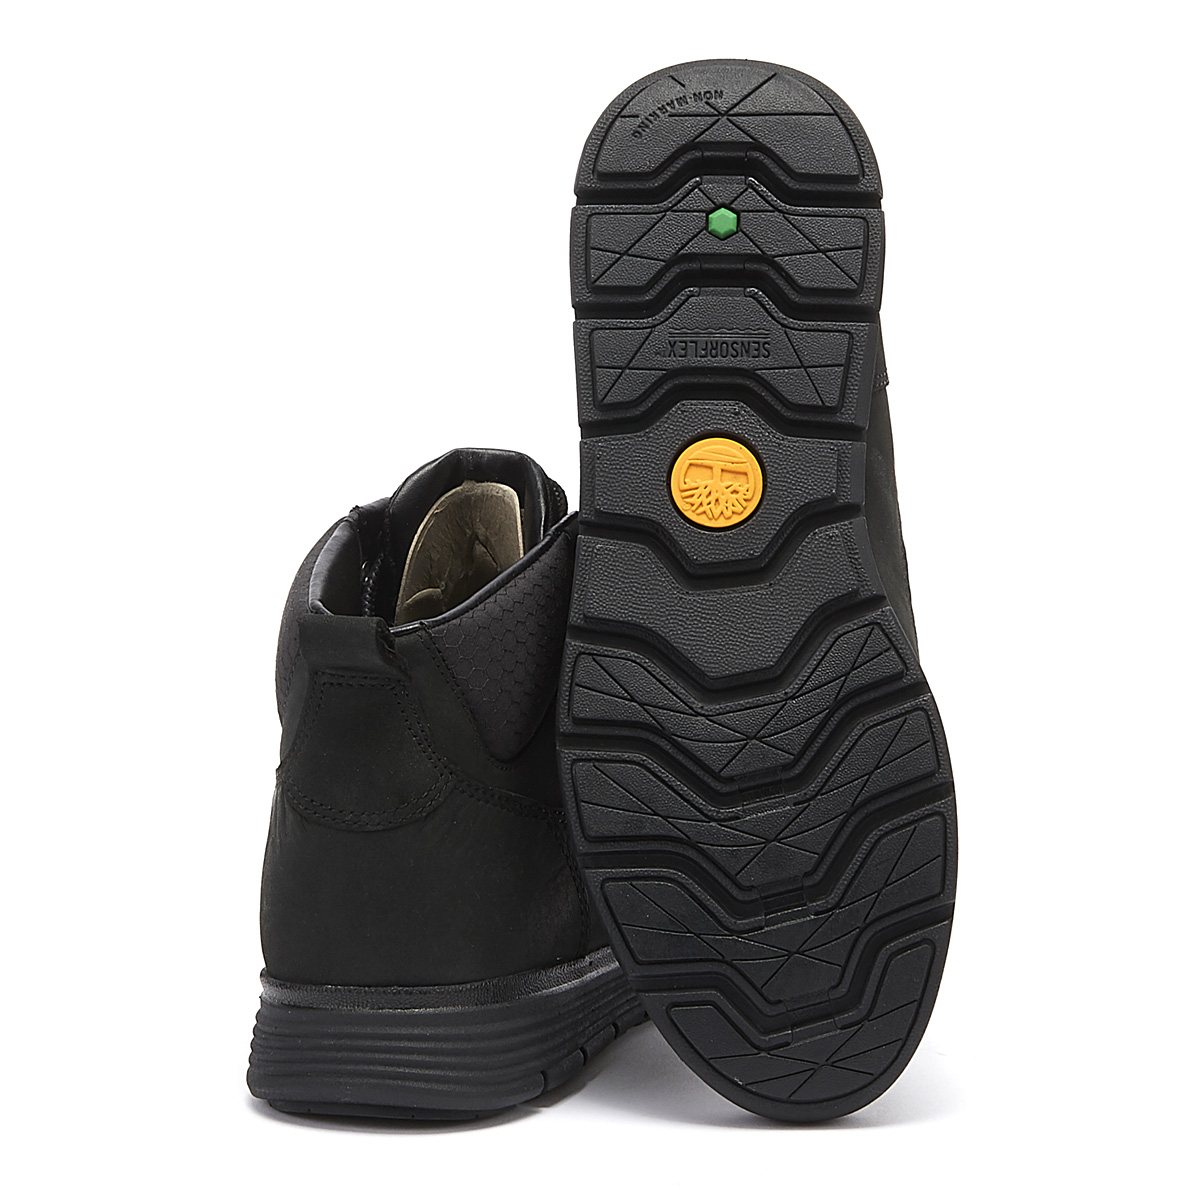 Details about Timberland Killington Junior Black Chukka Boots Kids Leather Winter Shoes